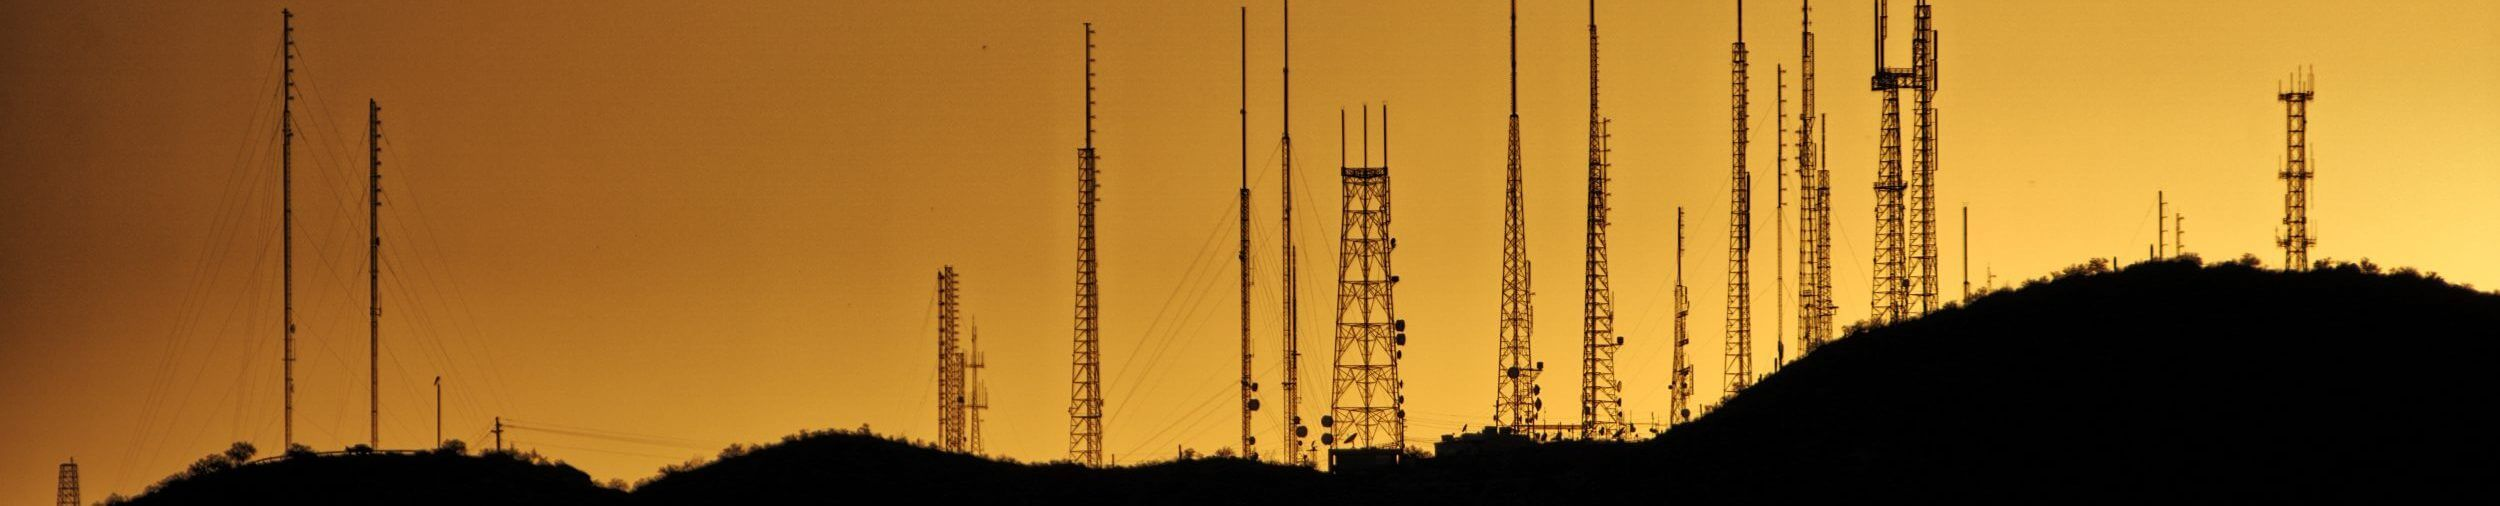 Cell Towers on a Hill